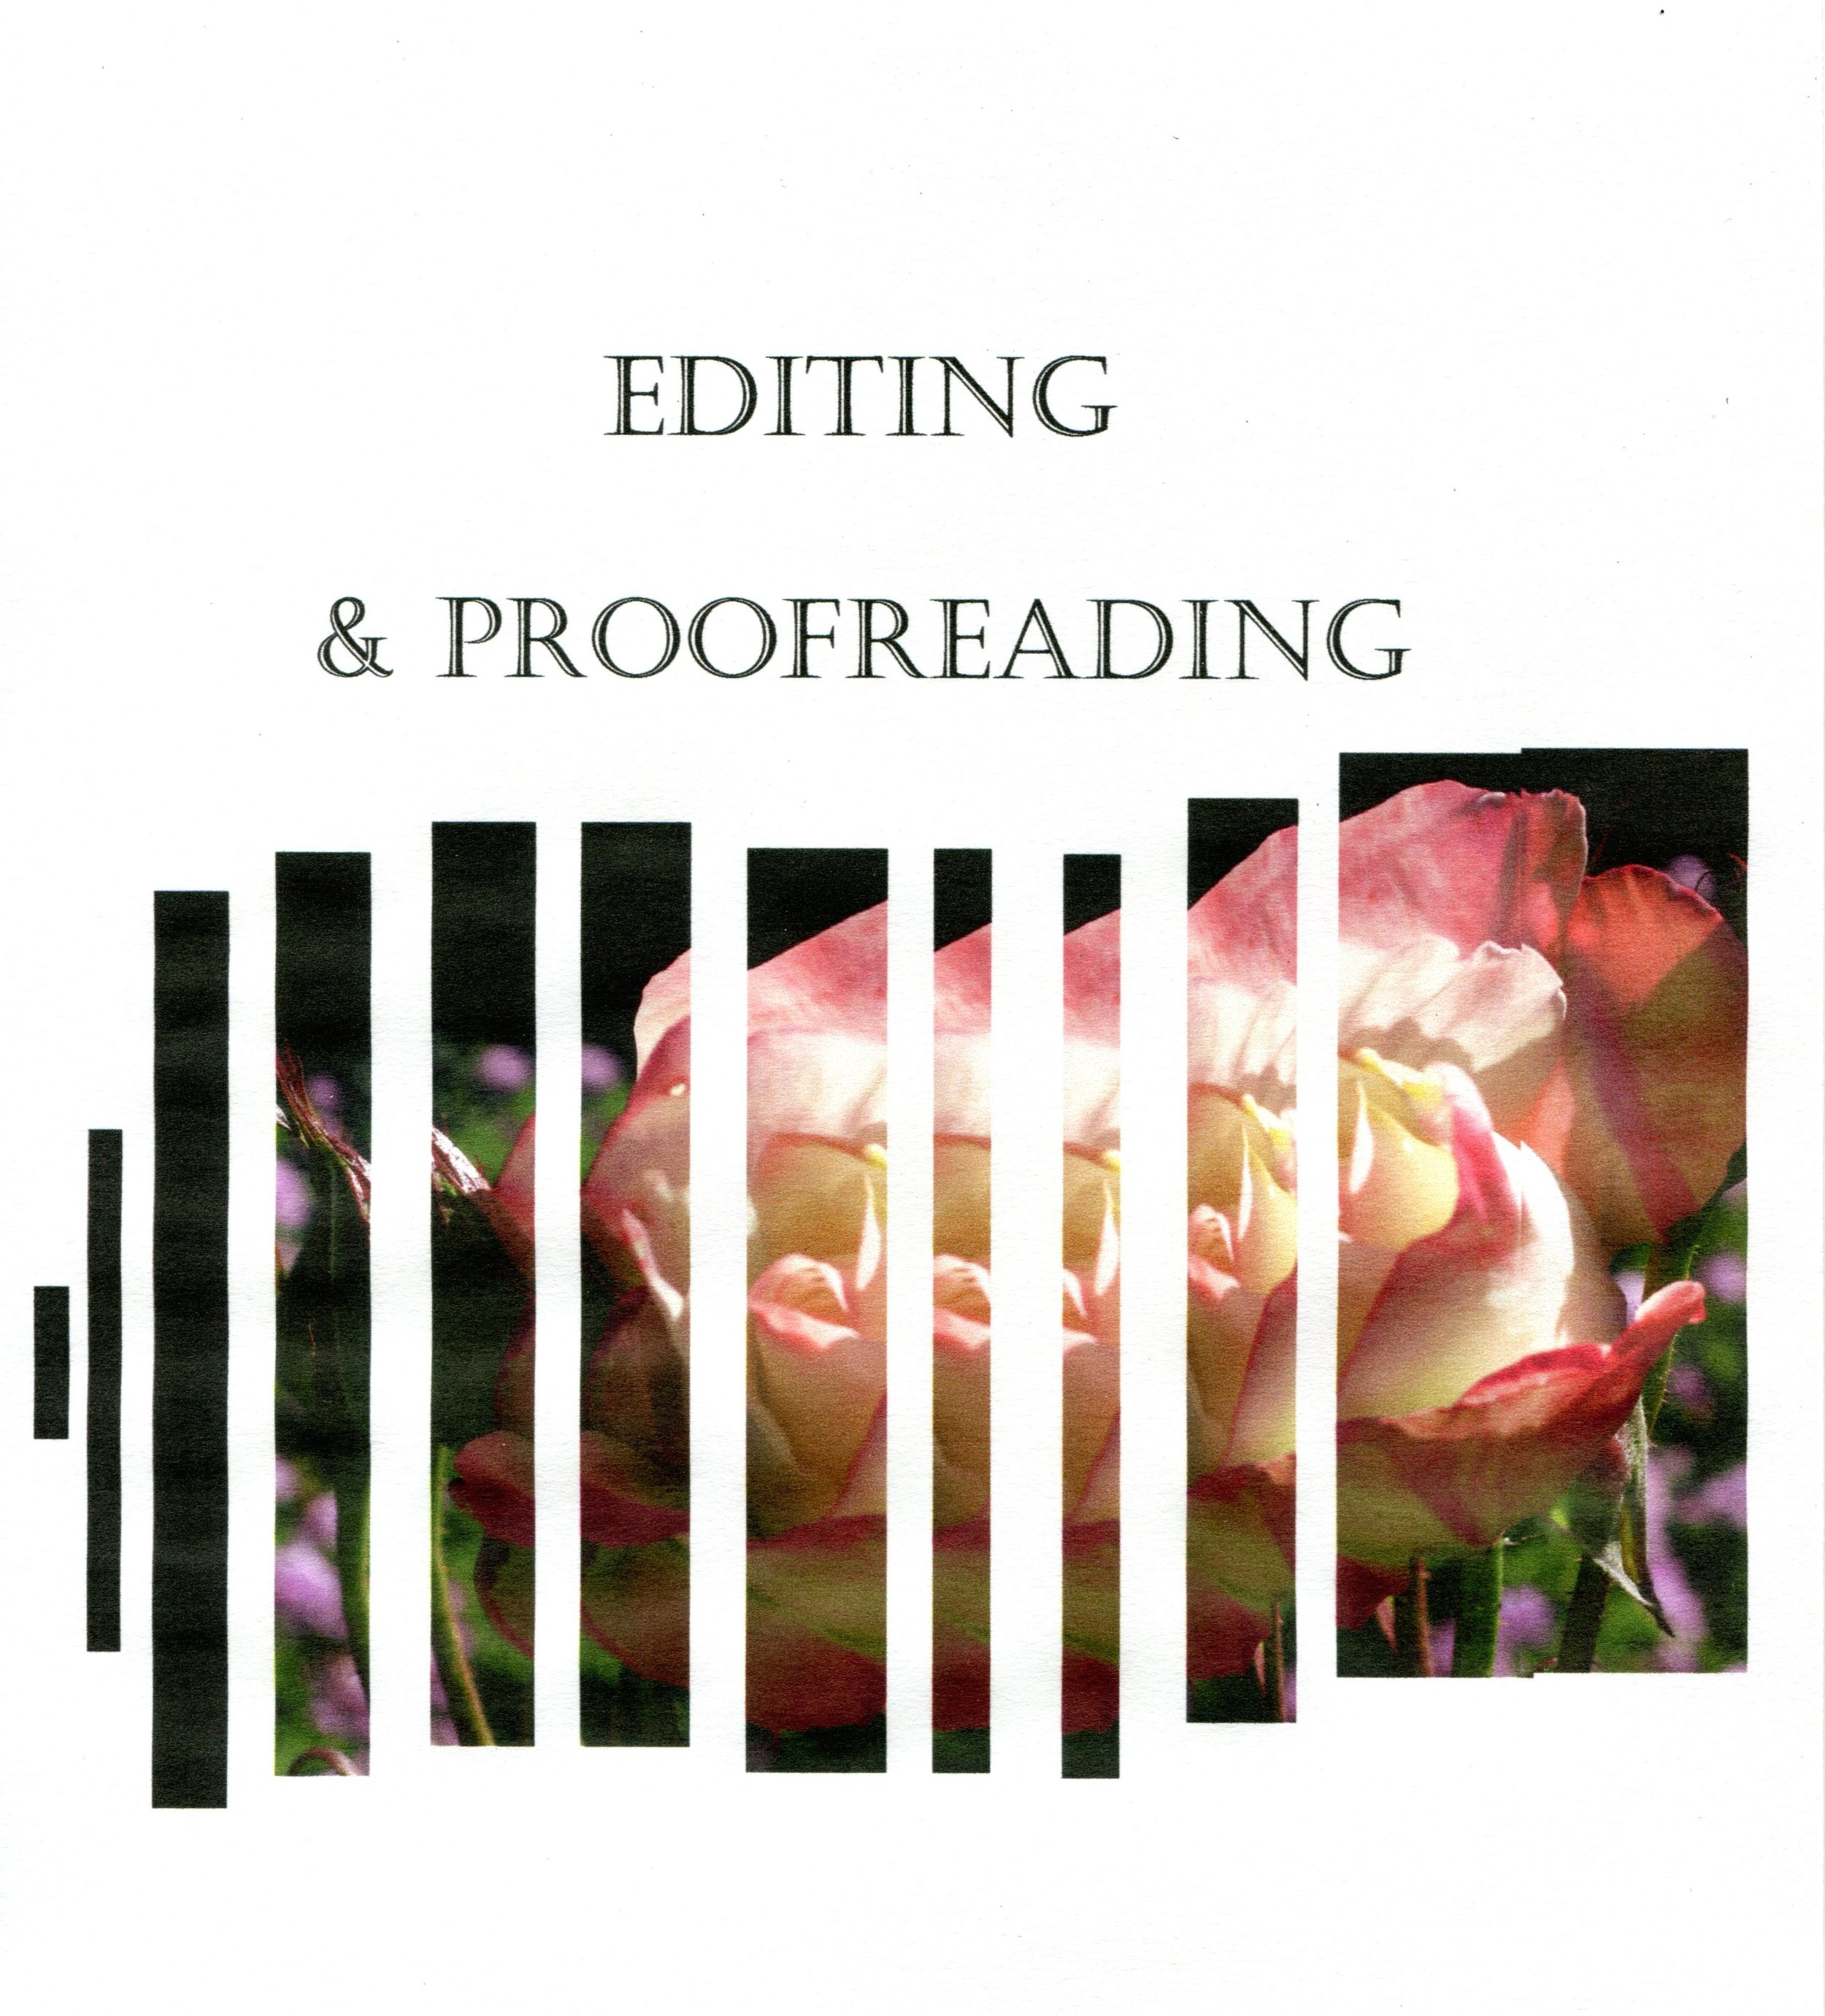 editing & proofreading through naomi rose